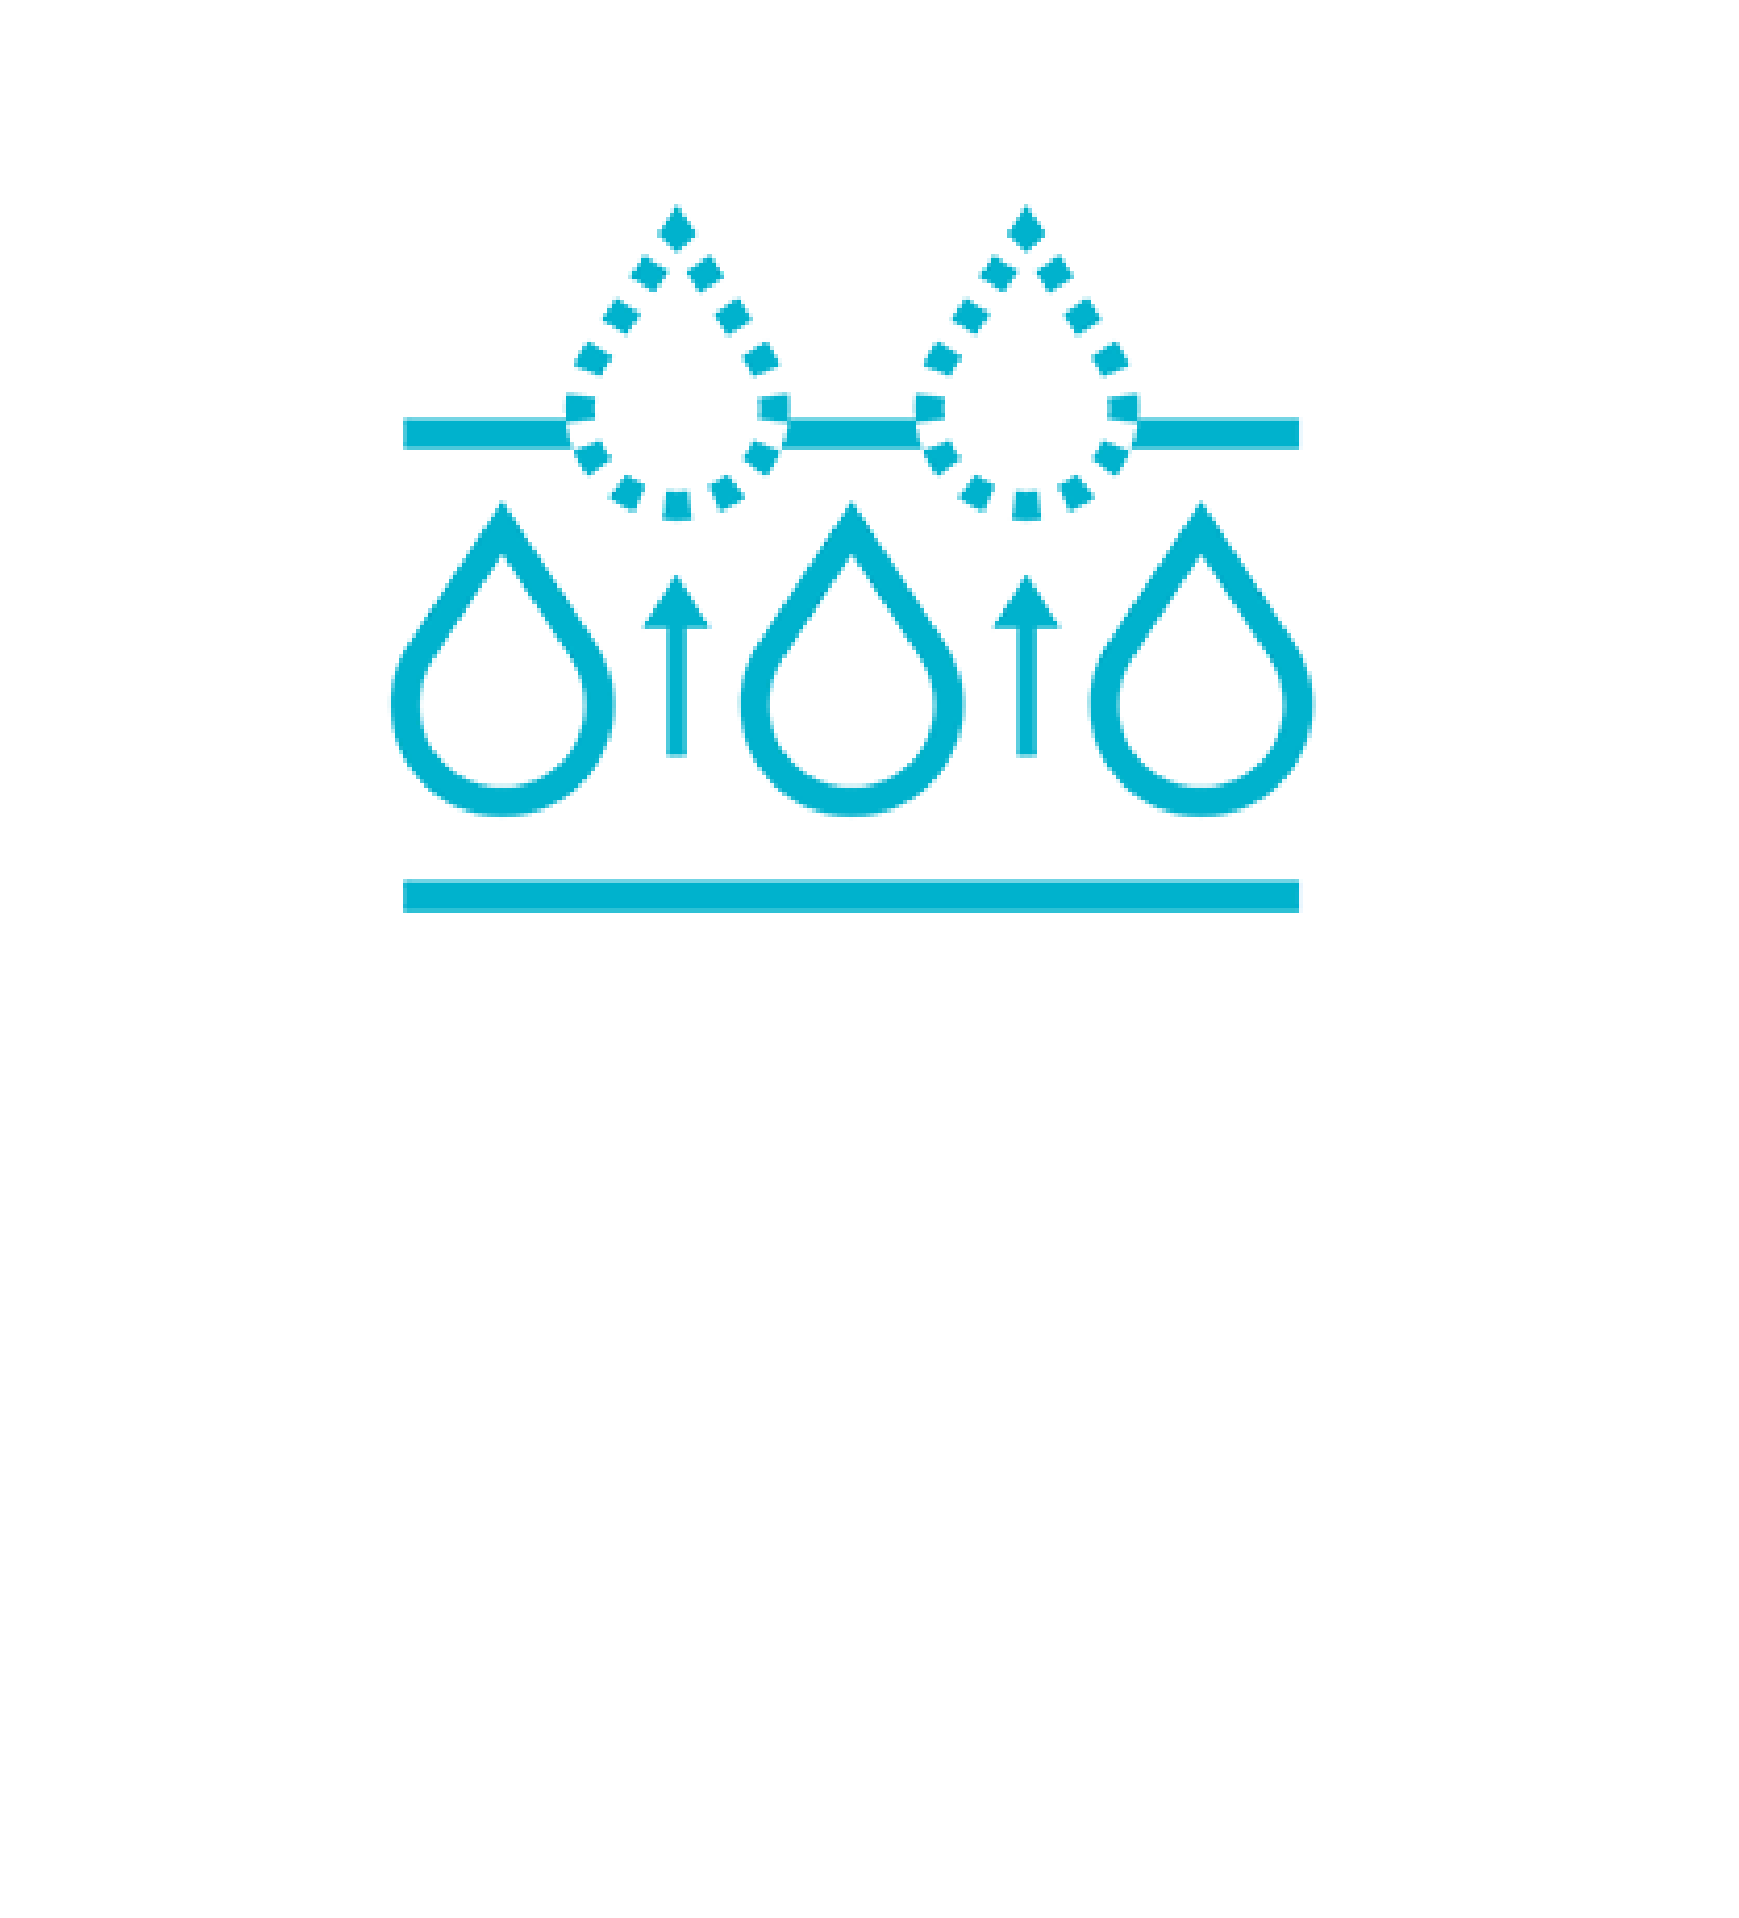 Icon with the text: PASS ON EXCESSIVE FLUID.